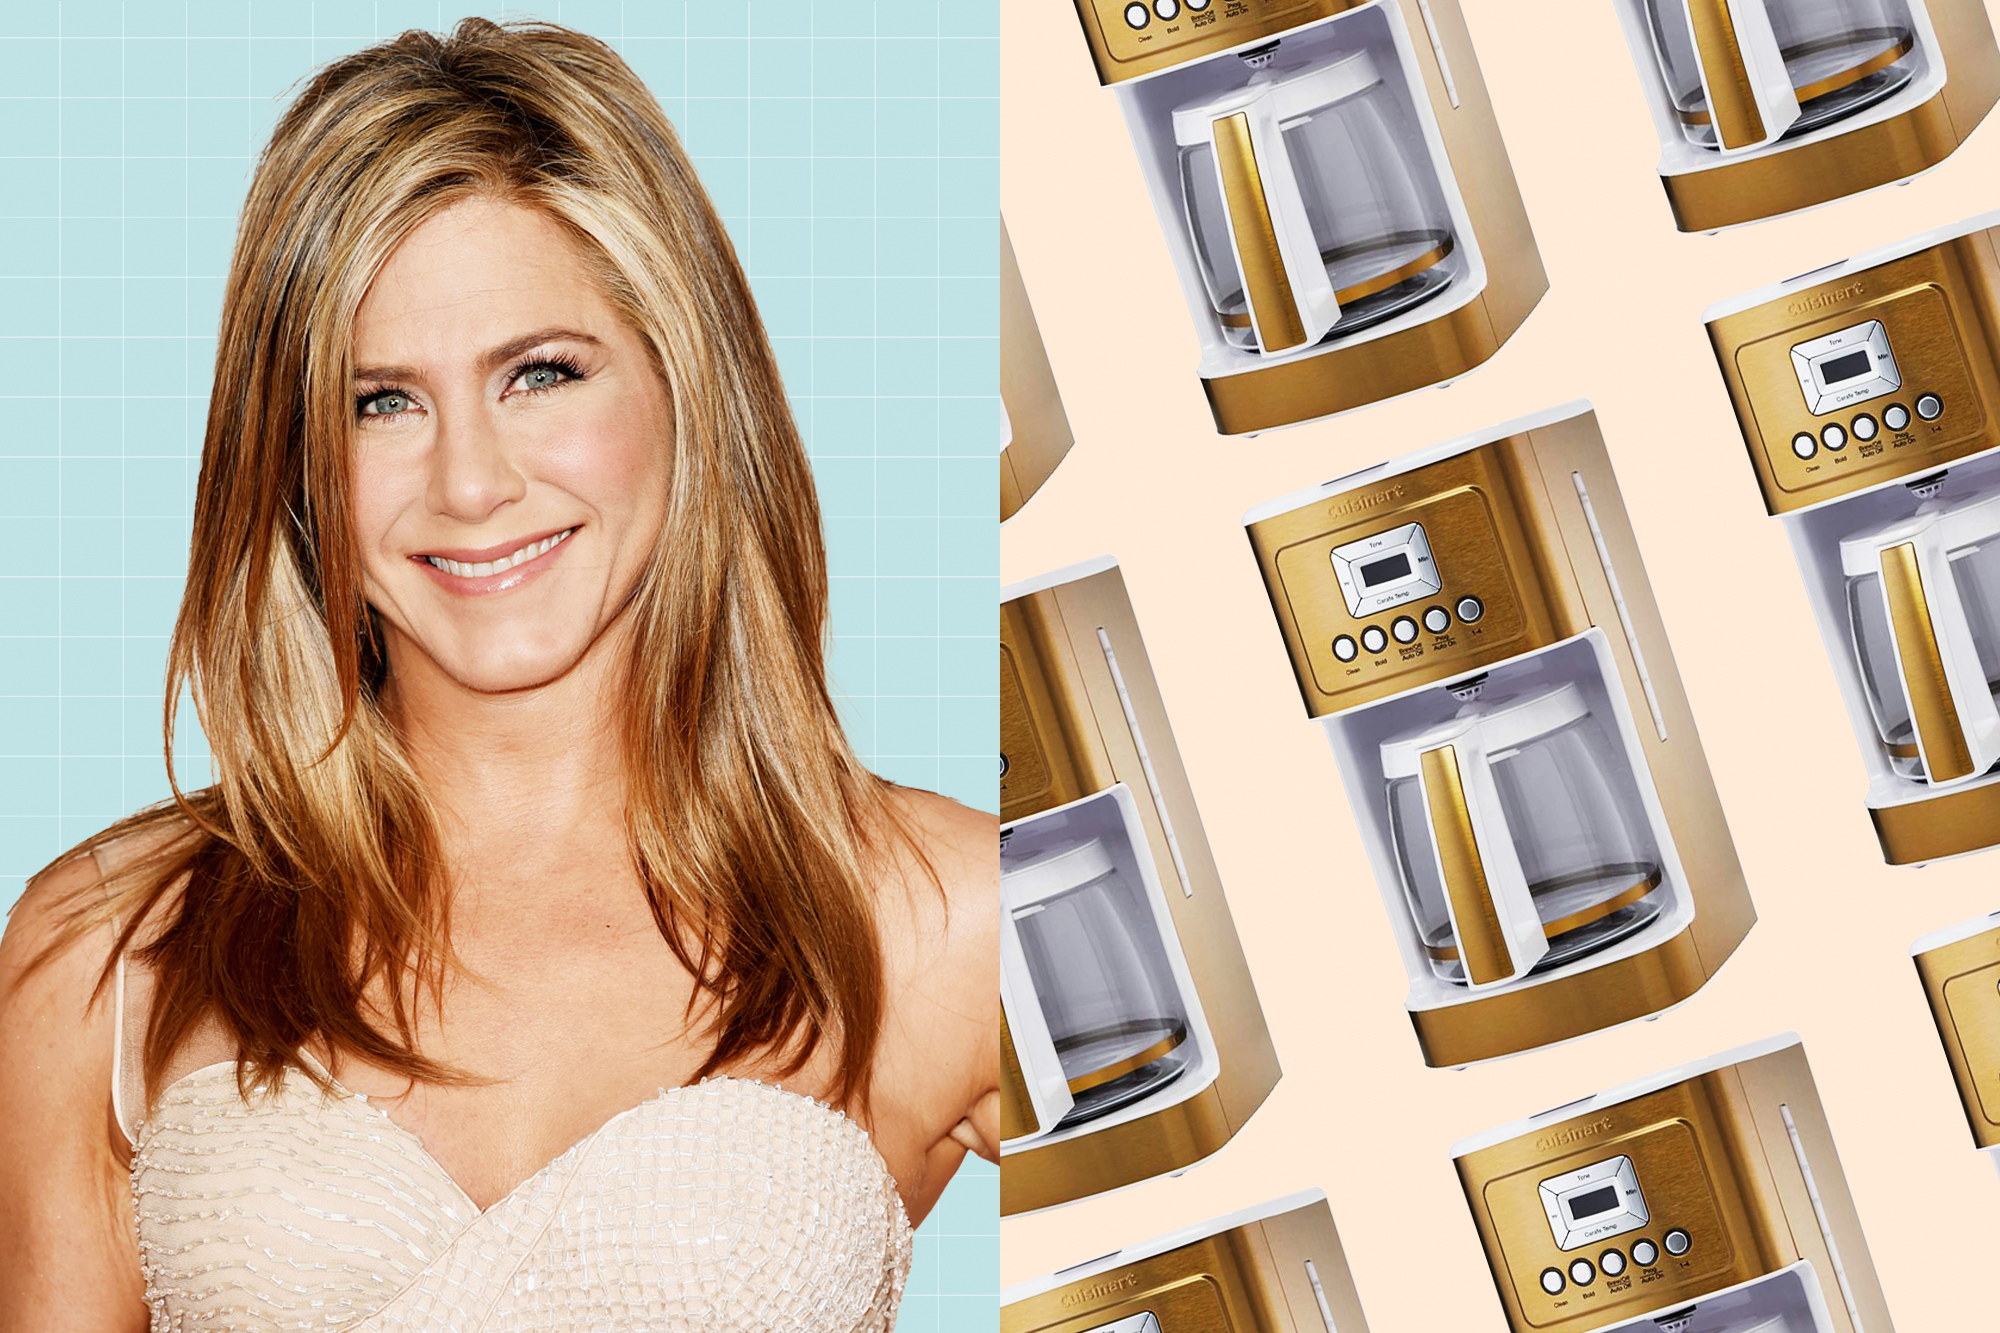 A portrait of Jennifer Aniston next to a slanted grid of Cuisinart DCC-3200 Programmable Coffeemaker with Glass Carafe and Stainless Steel Handle, 14 Cup, White/Gold